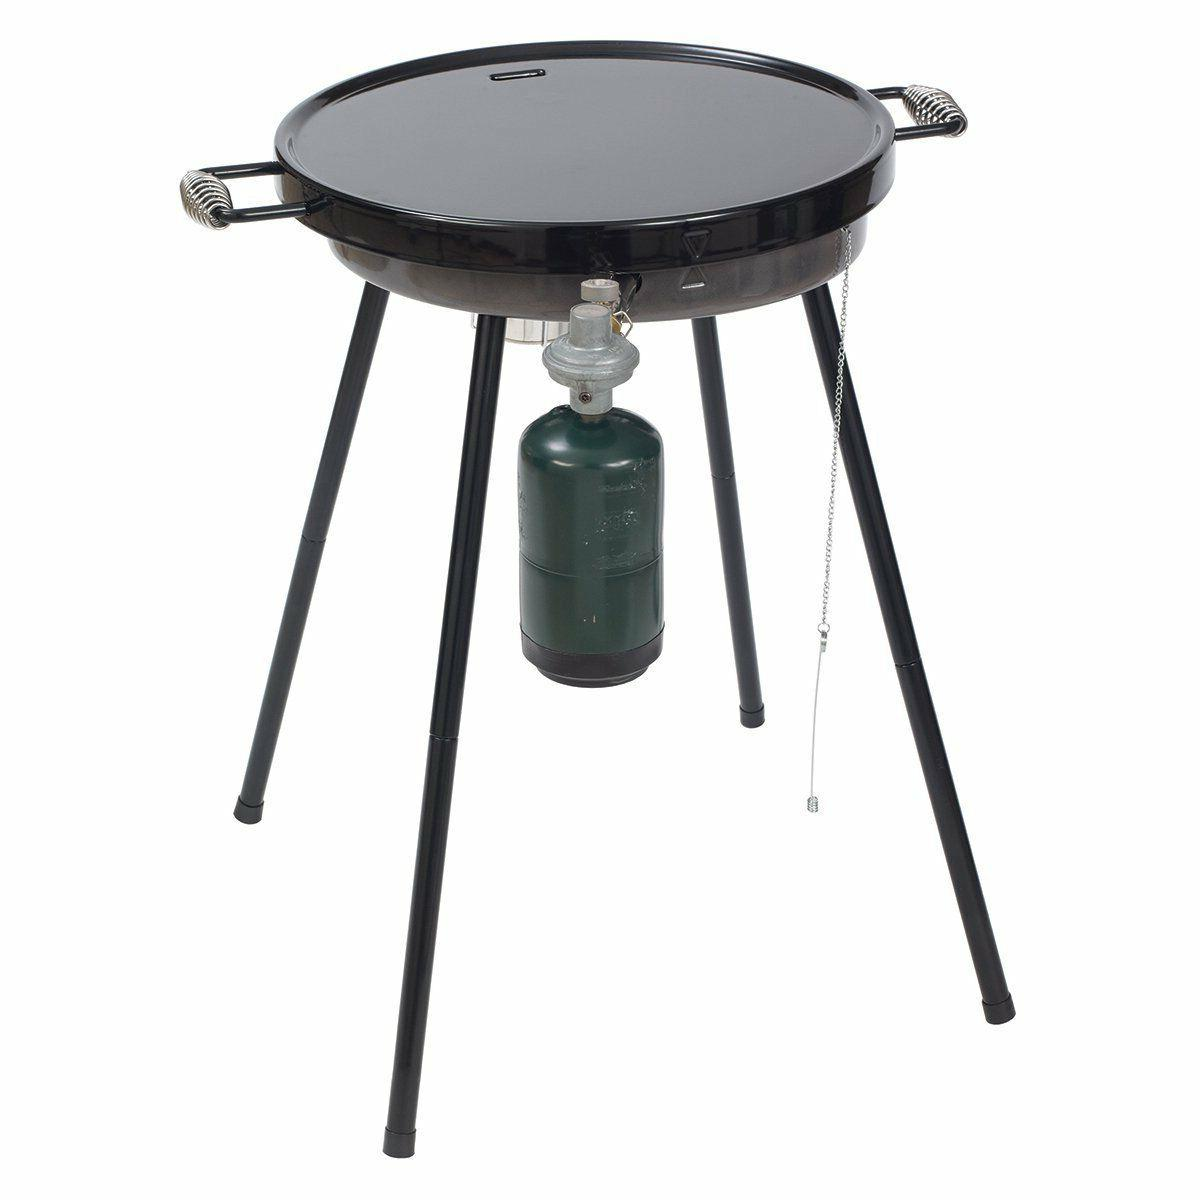 Bayou Classic 18-inch Portable Propane Griddle Cooker for Ca